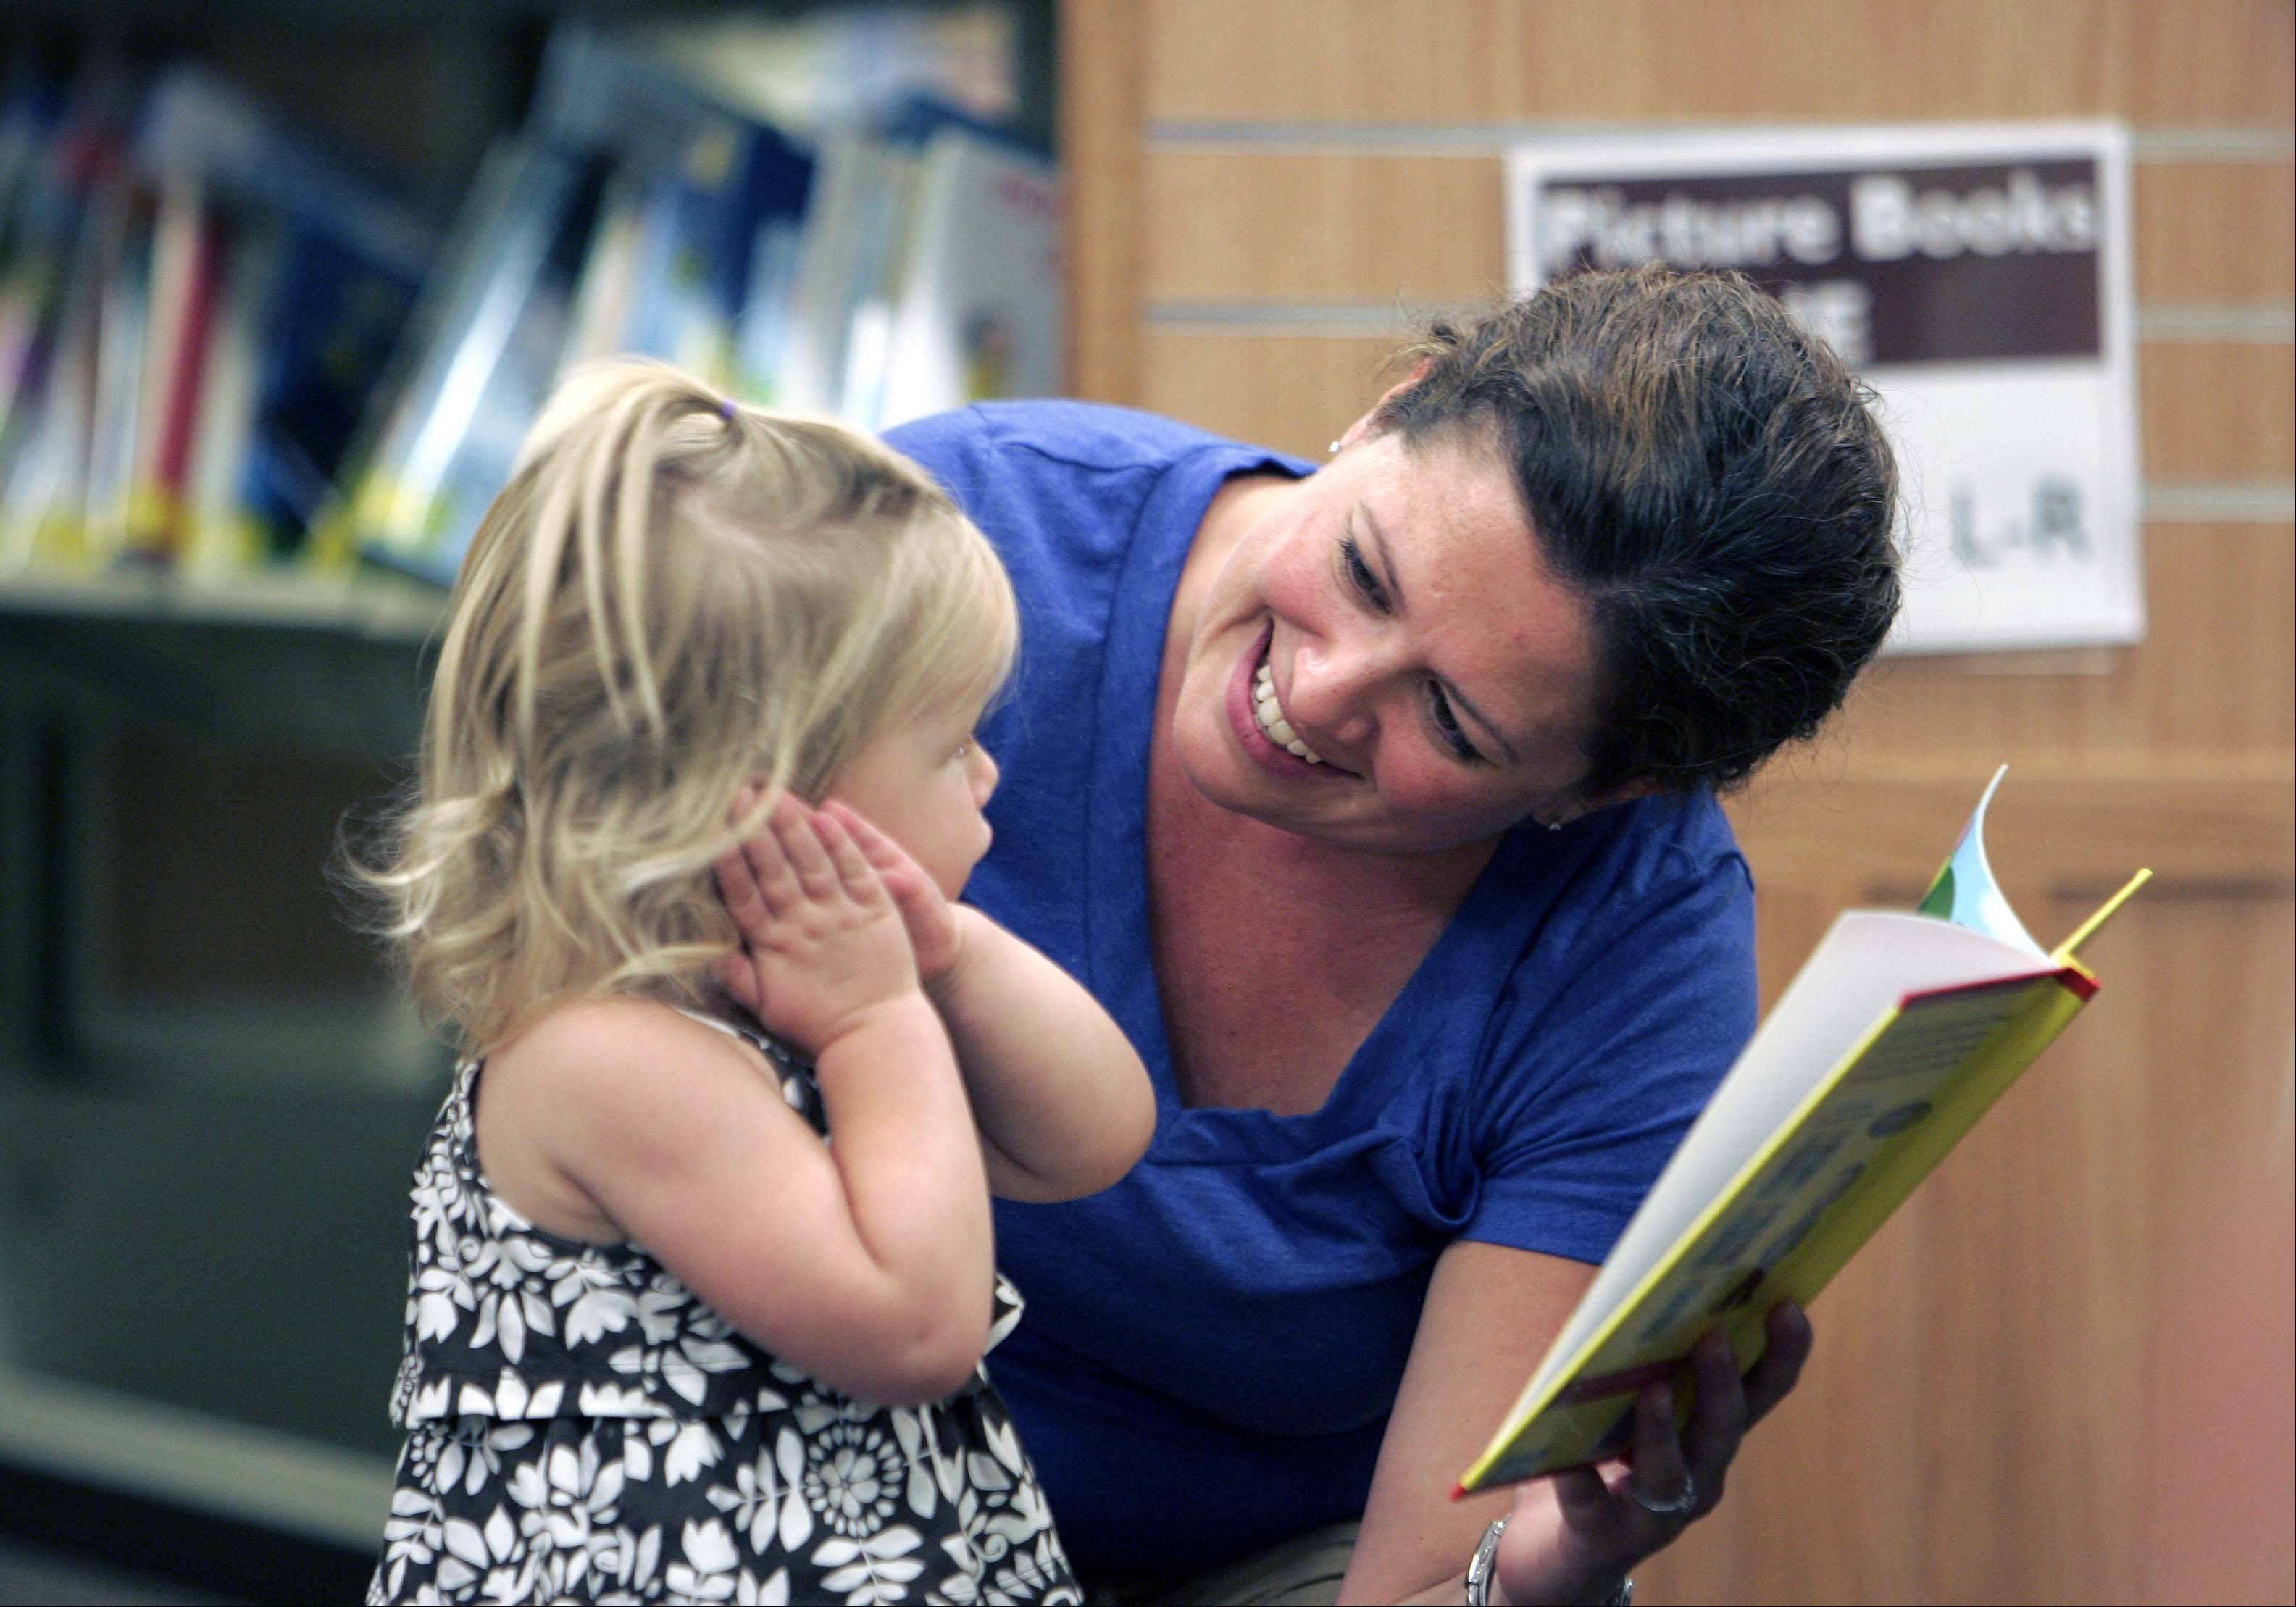 Rachel Vanderkamp of Carpentersville reads to her one-year-old daughter Nora in the West side branch of the Fox River Valley Public Library District which is in the Dundee Township Park District Randall Oaks Recreation Center in West Dundee Saturday August 25, 2012.